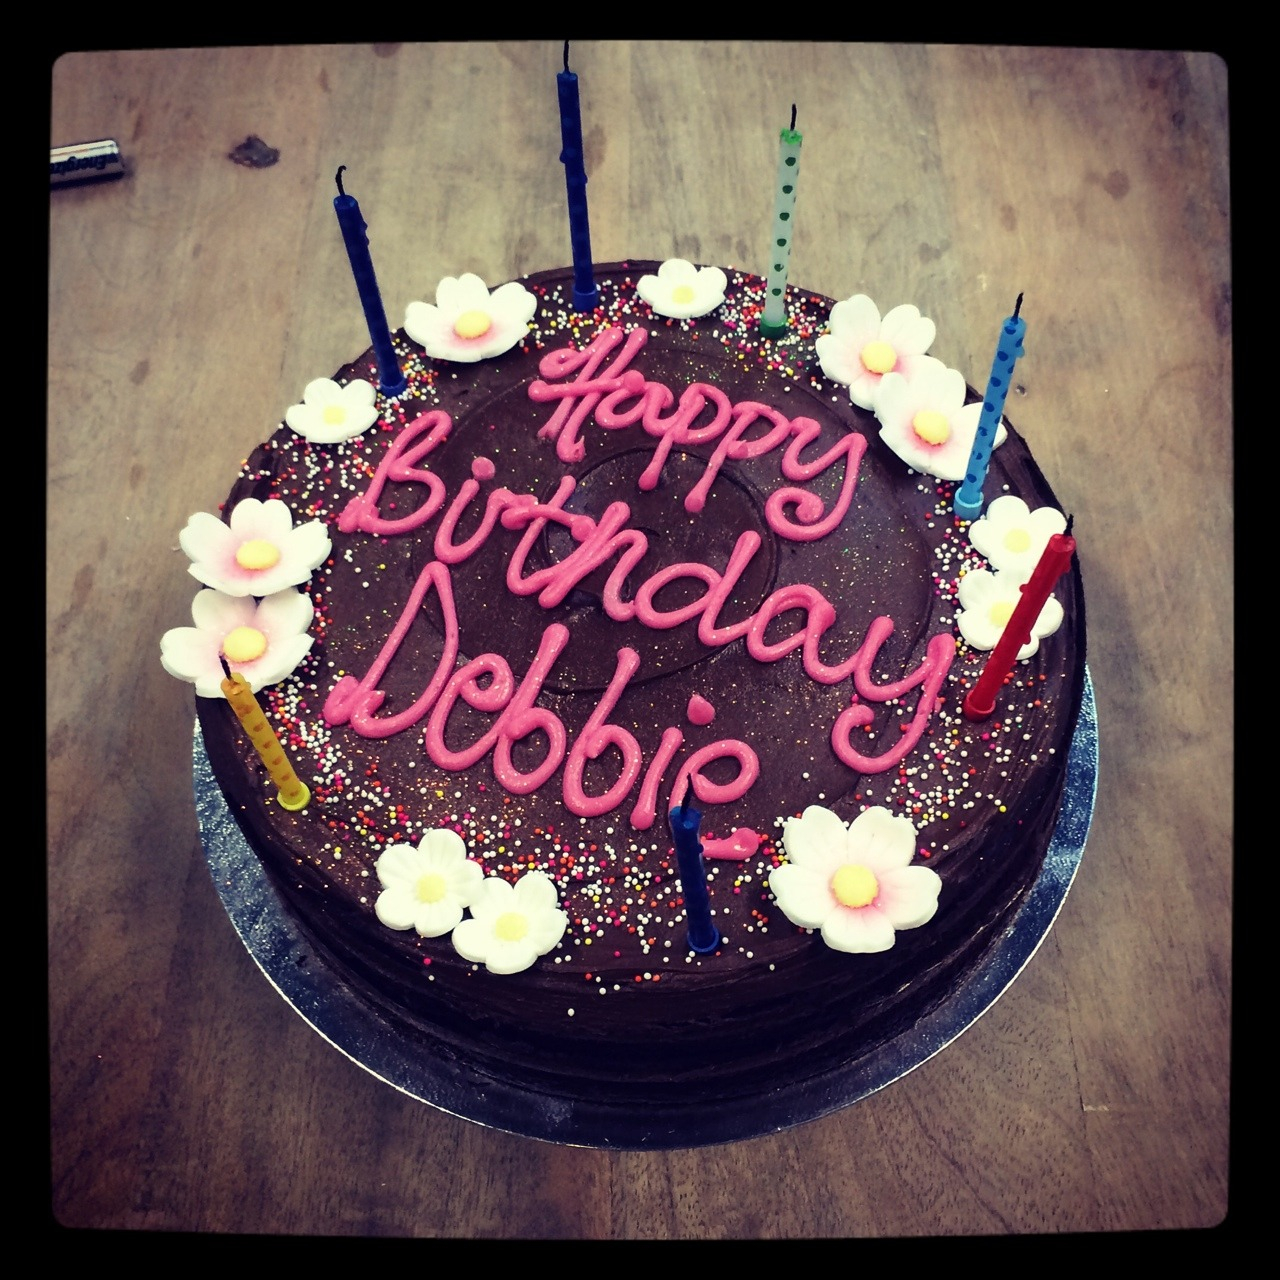 Happy Birthday Debbie Cake Real Humans Of Swoon Editions Happy Birthday Debbie